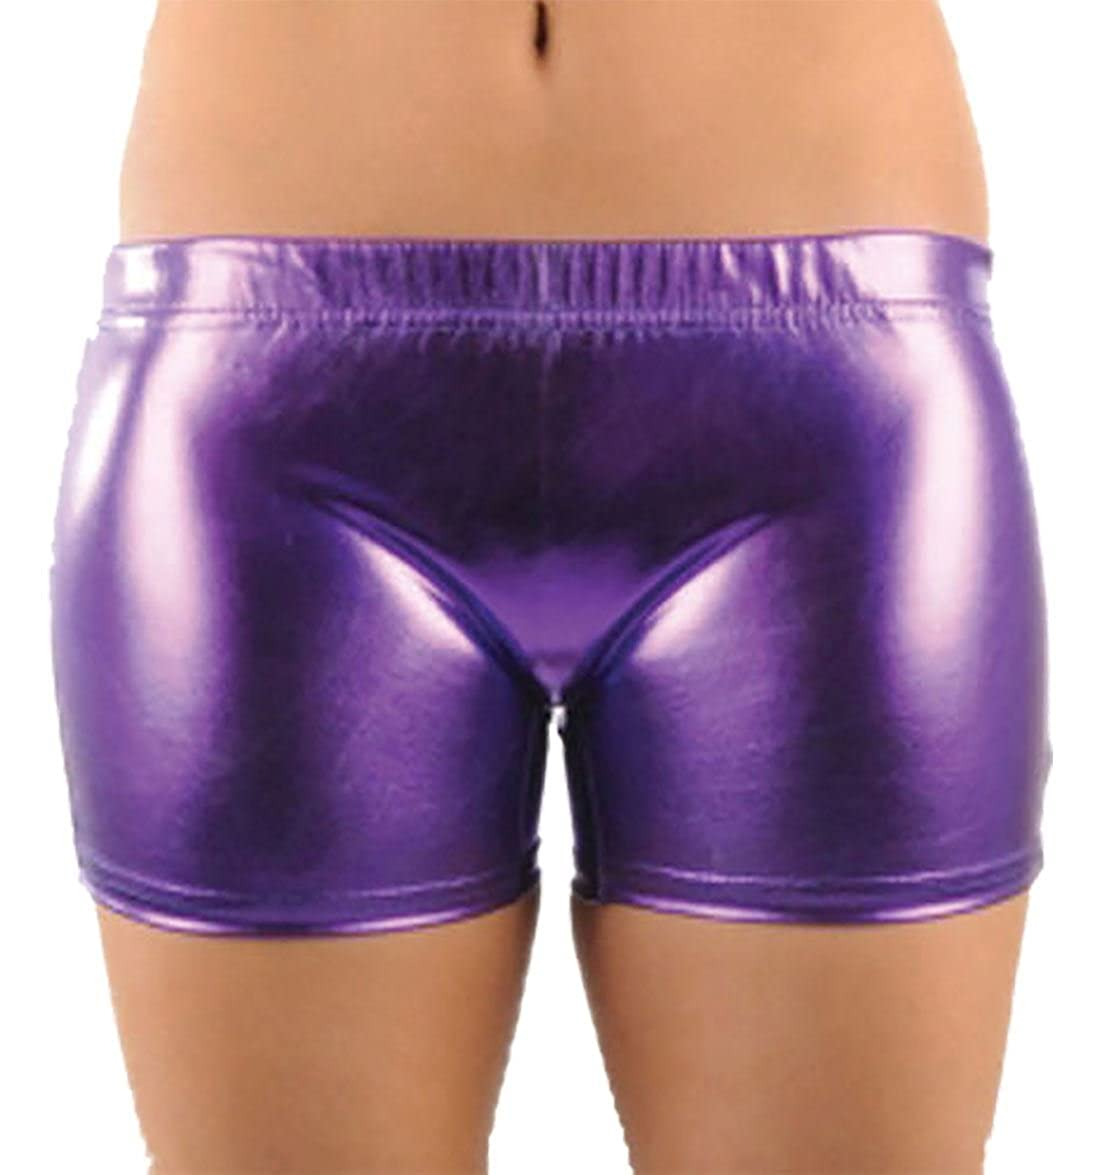 Islander Fashions Girls Metallic Shiny Hot Pants Ladies Wet Look Stretchy Dance Wear Pantaloncini 5-12 anni